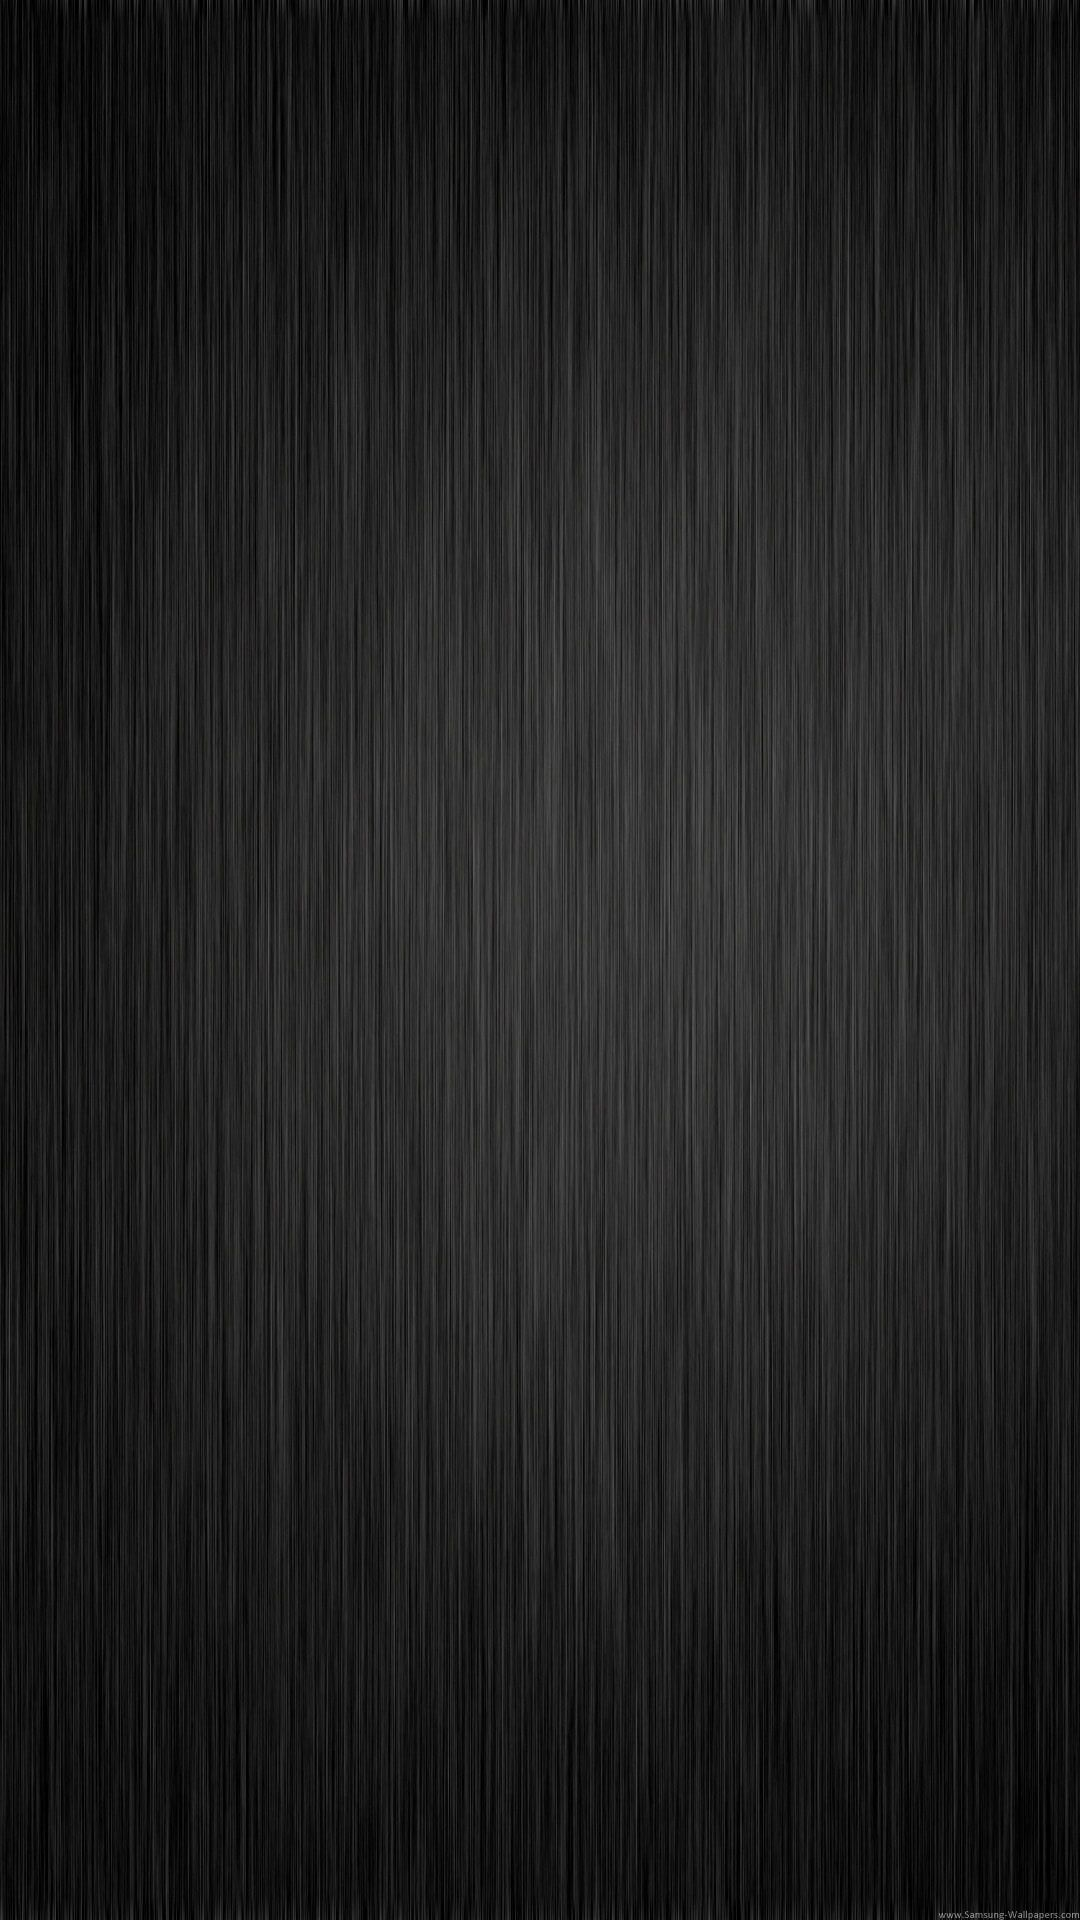 Cool Black Wallpaper For Android Backgrounds For Android Grey Wallpaper Dark Grey Wallpaper Black Wallpaper